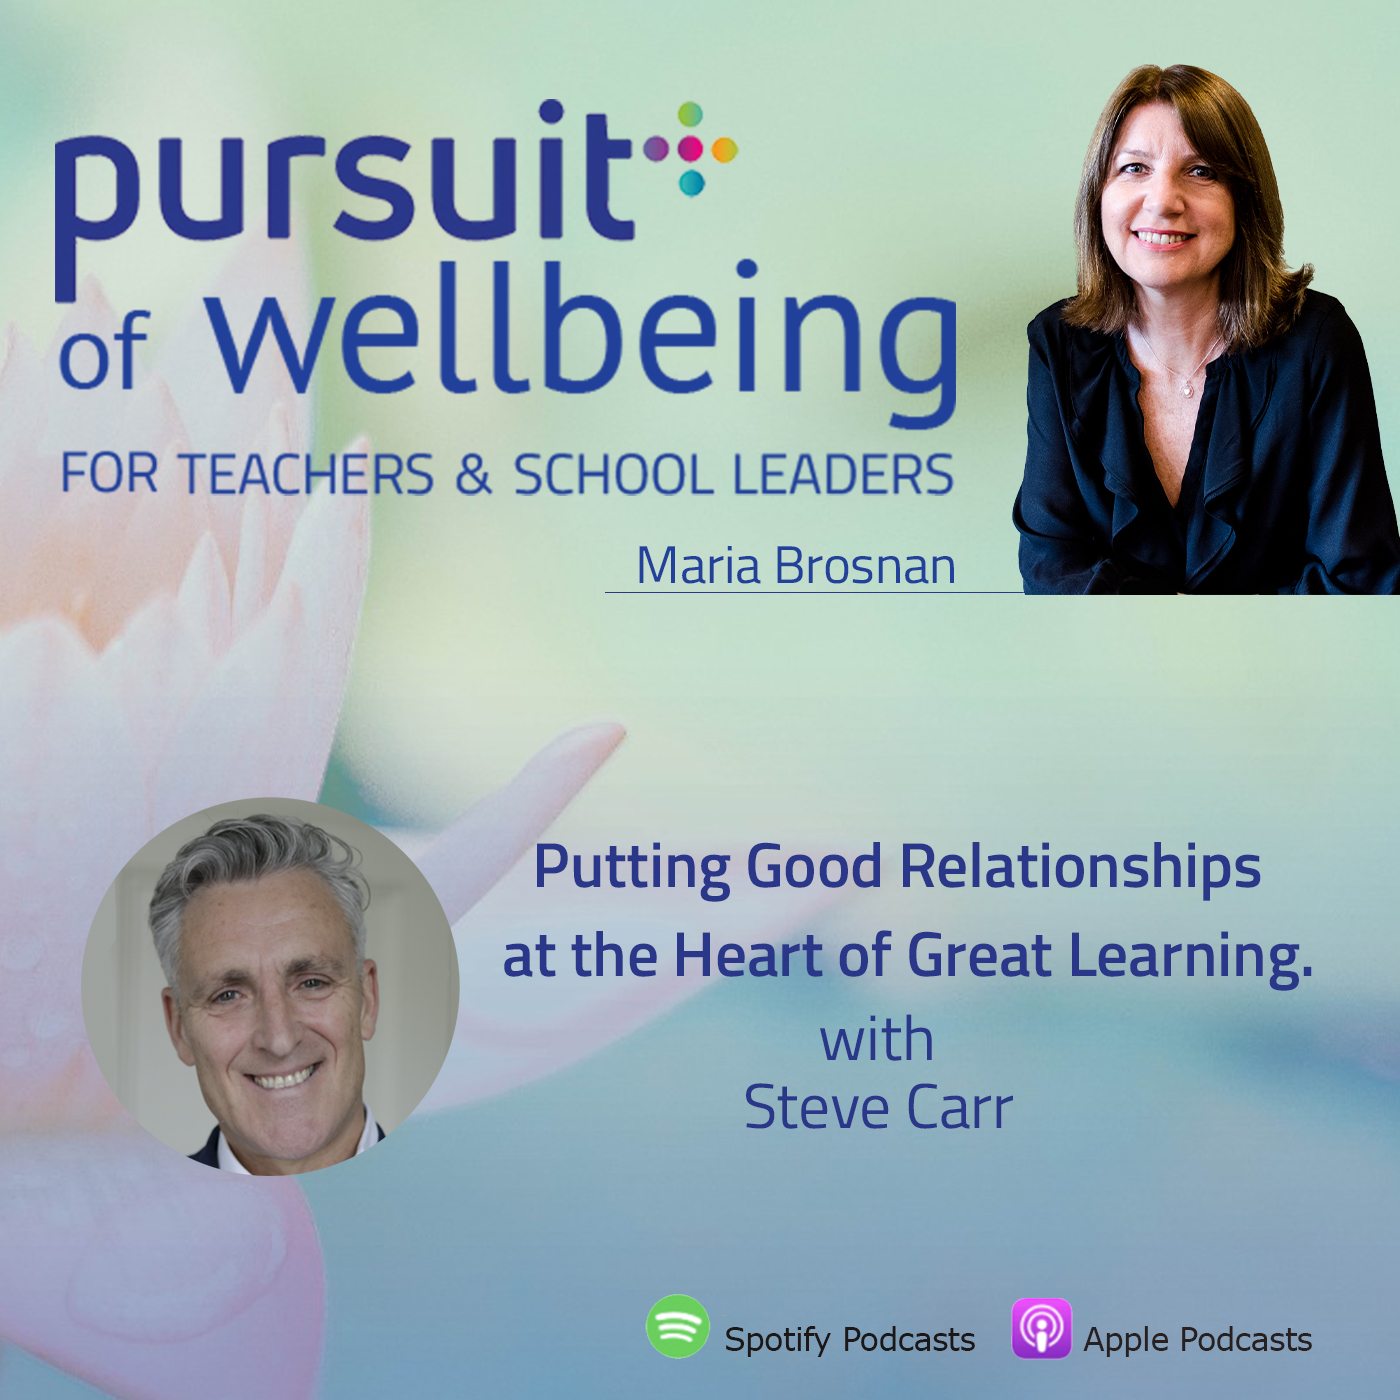 Putting Good Relationships at the Heart of Great Learning with Steve Carr